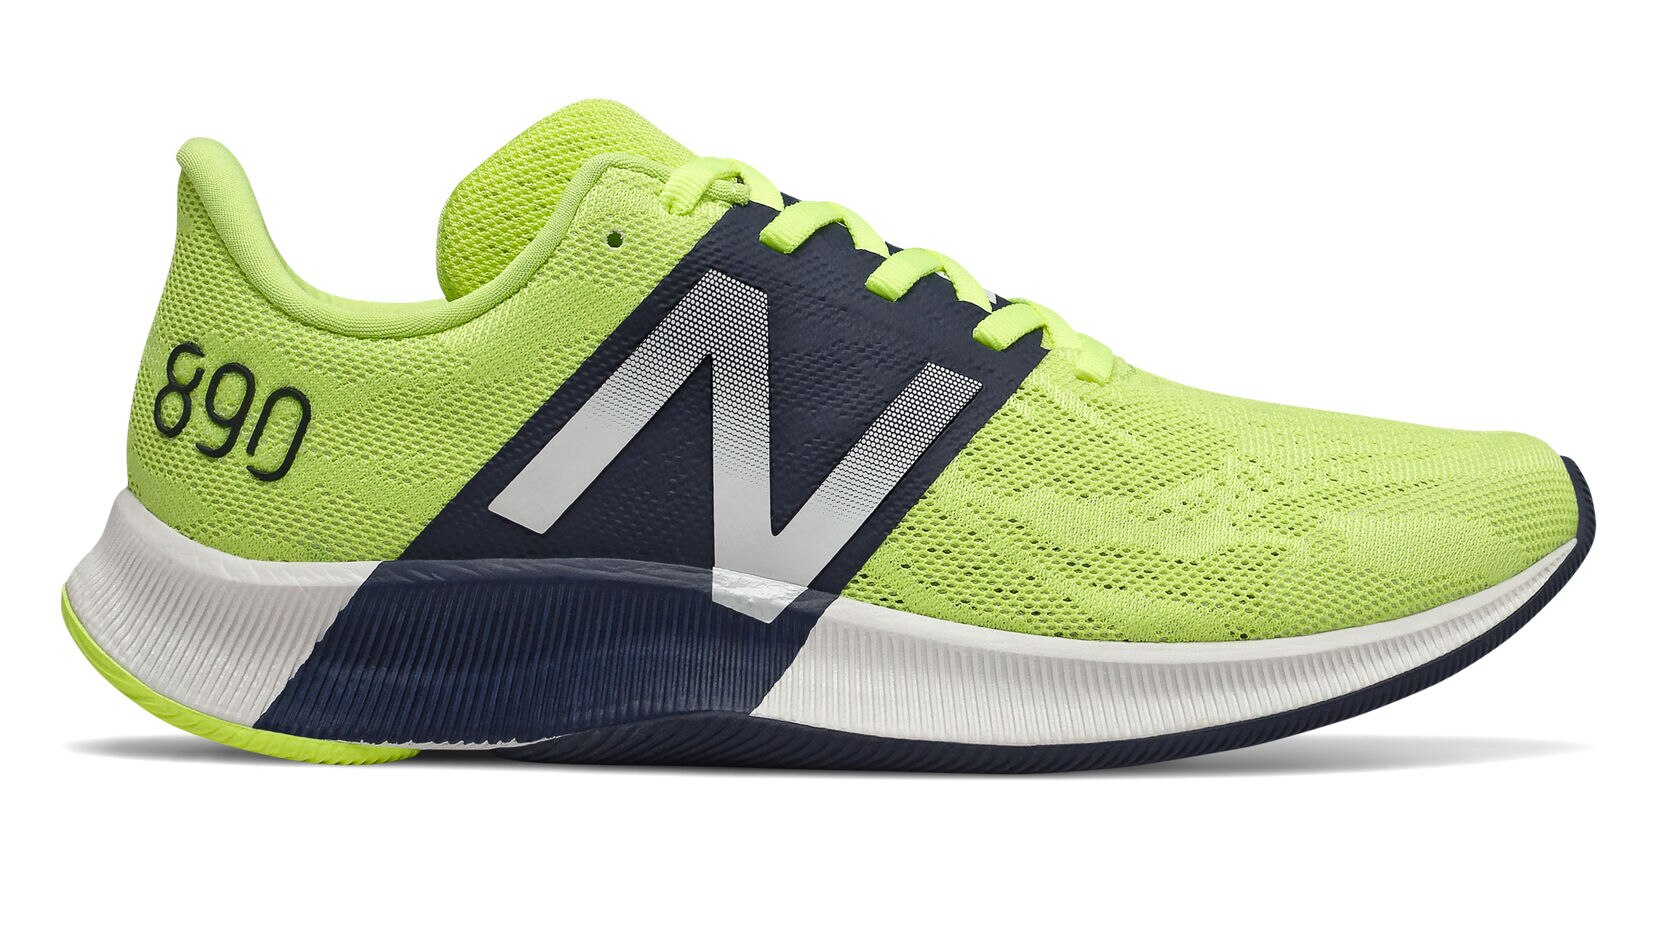 New Balance FuelCell 890v8 Womens